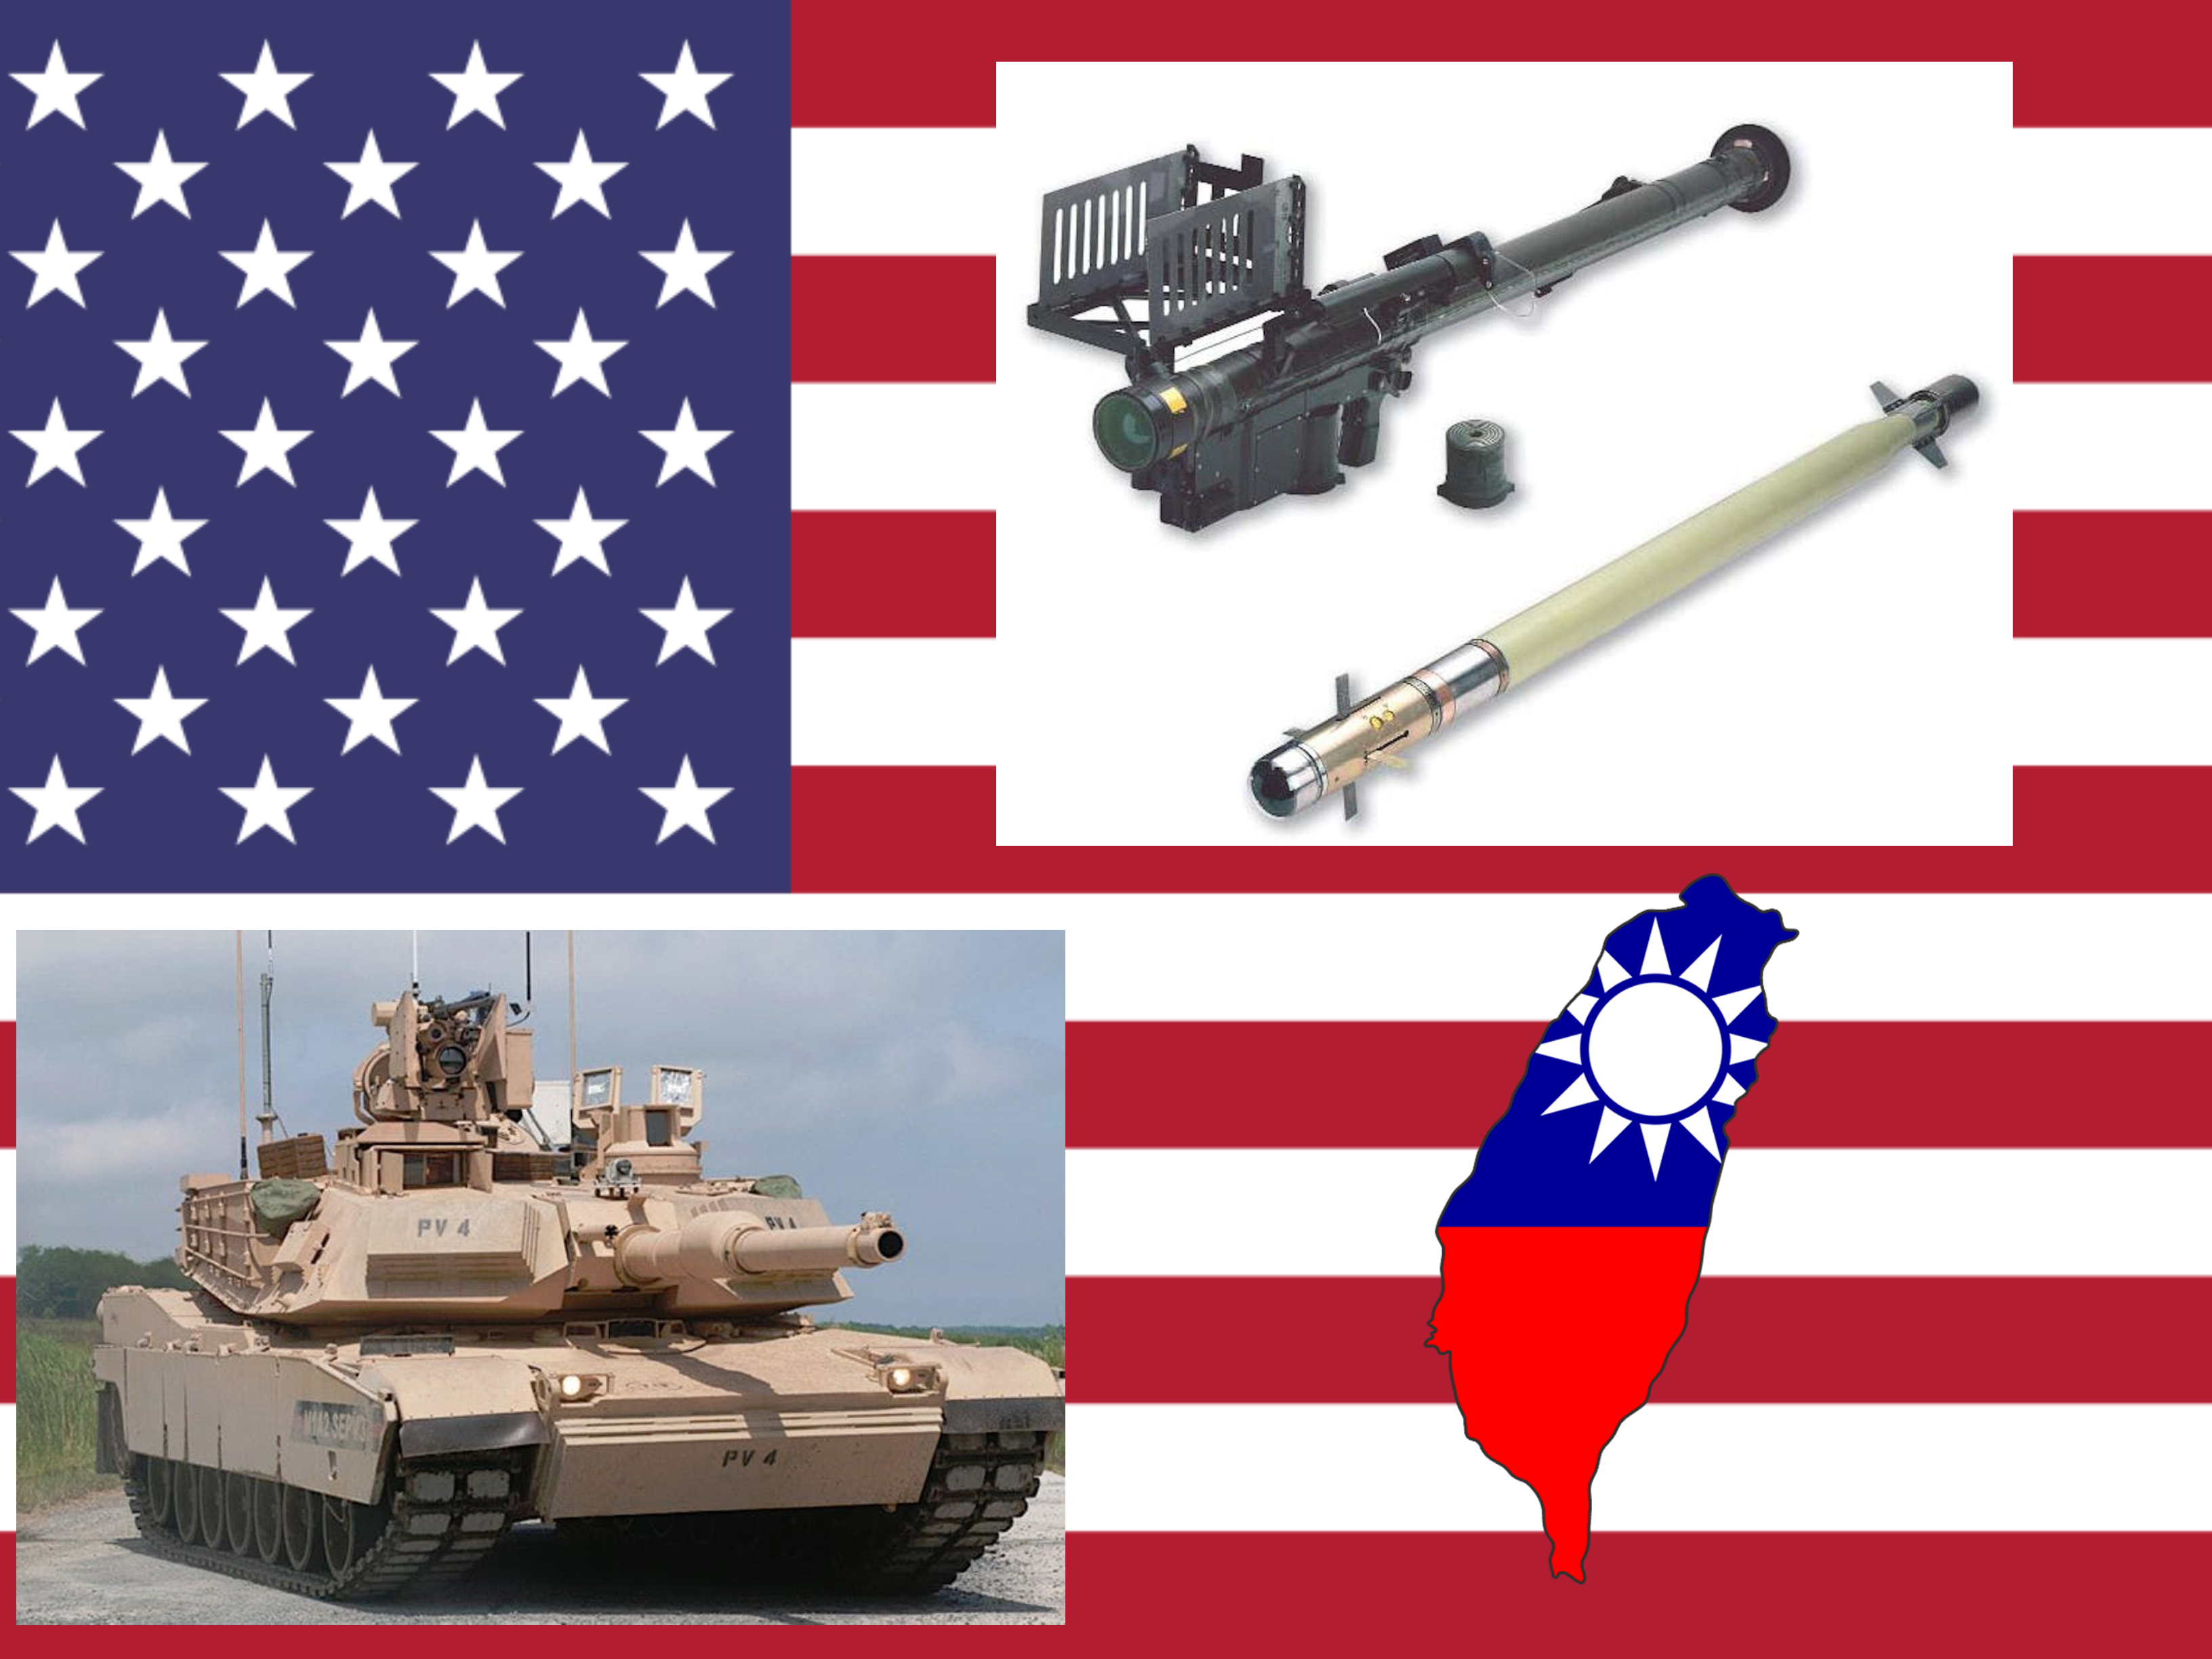 China To Sanction US Companies Over Approved Sale Of M1A2 Abrams Tanks And Stinger Missiles to Taiwan